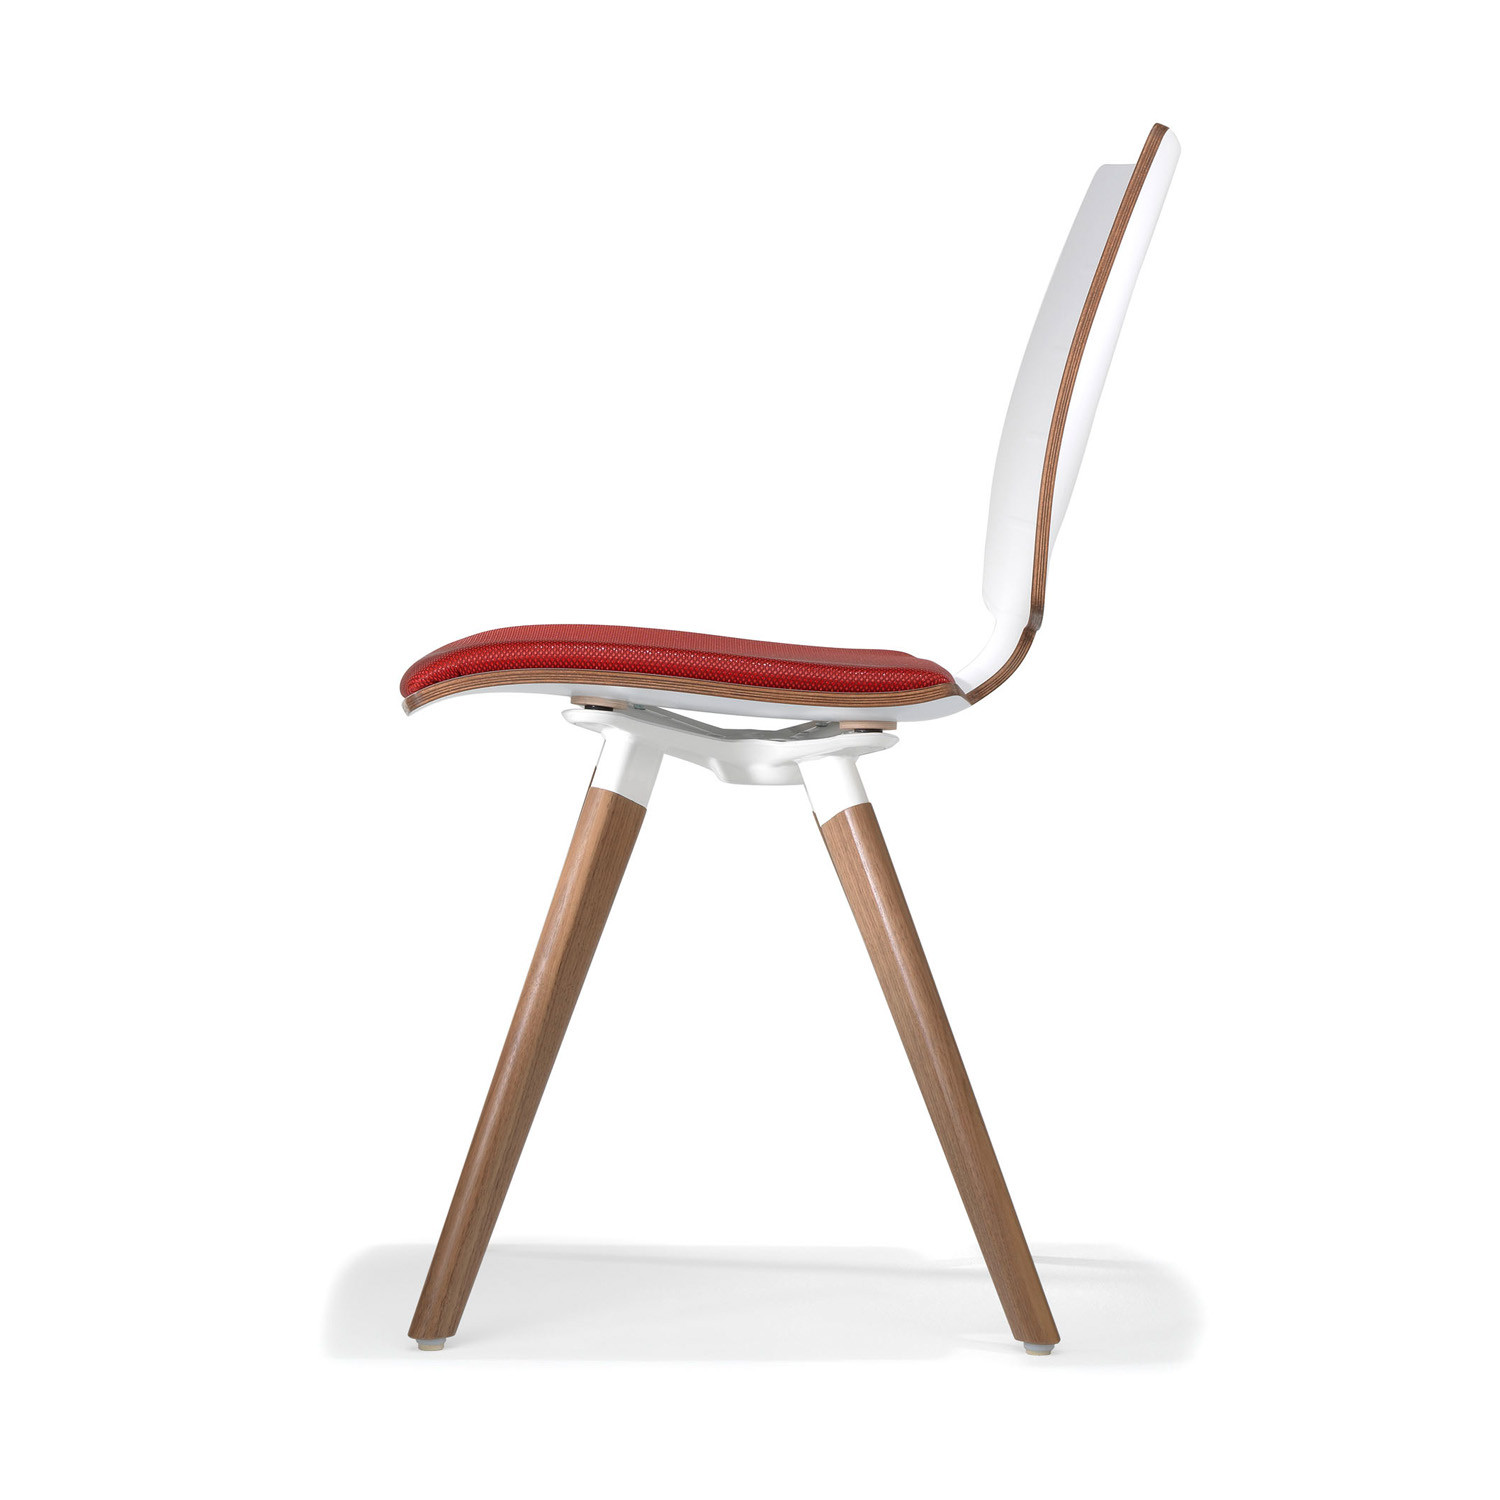 2180 Uni_Verso Wooden-Framed Cafe Chair